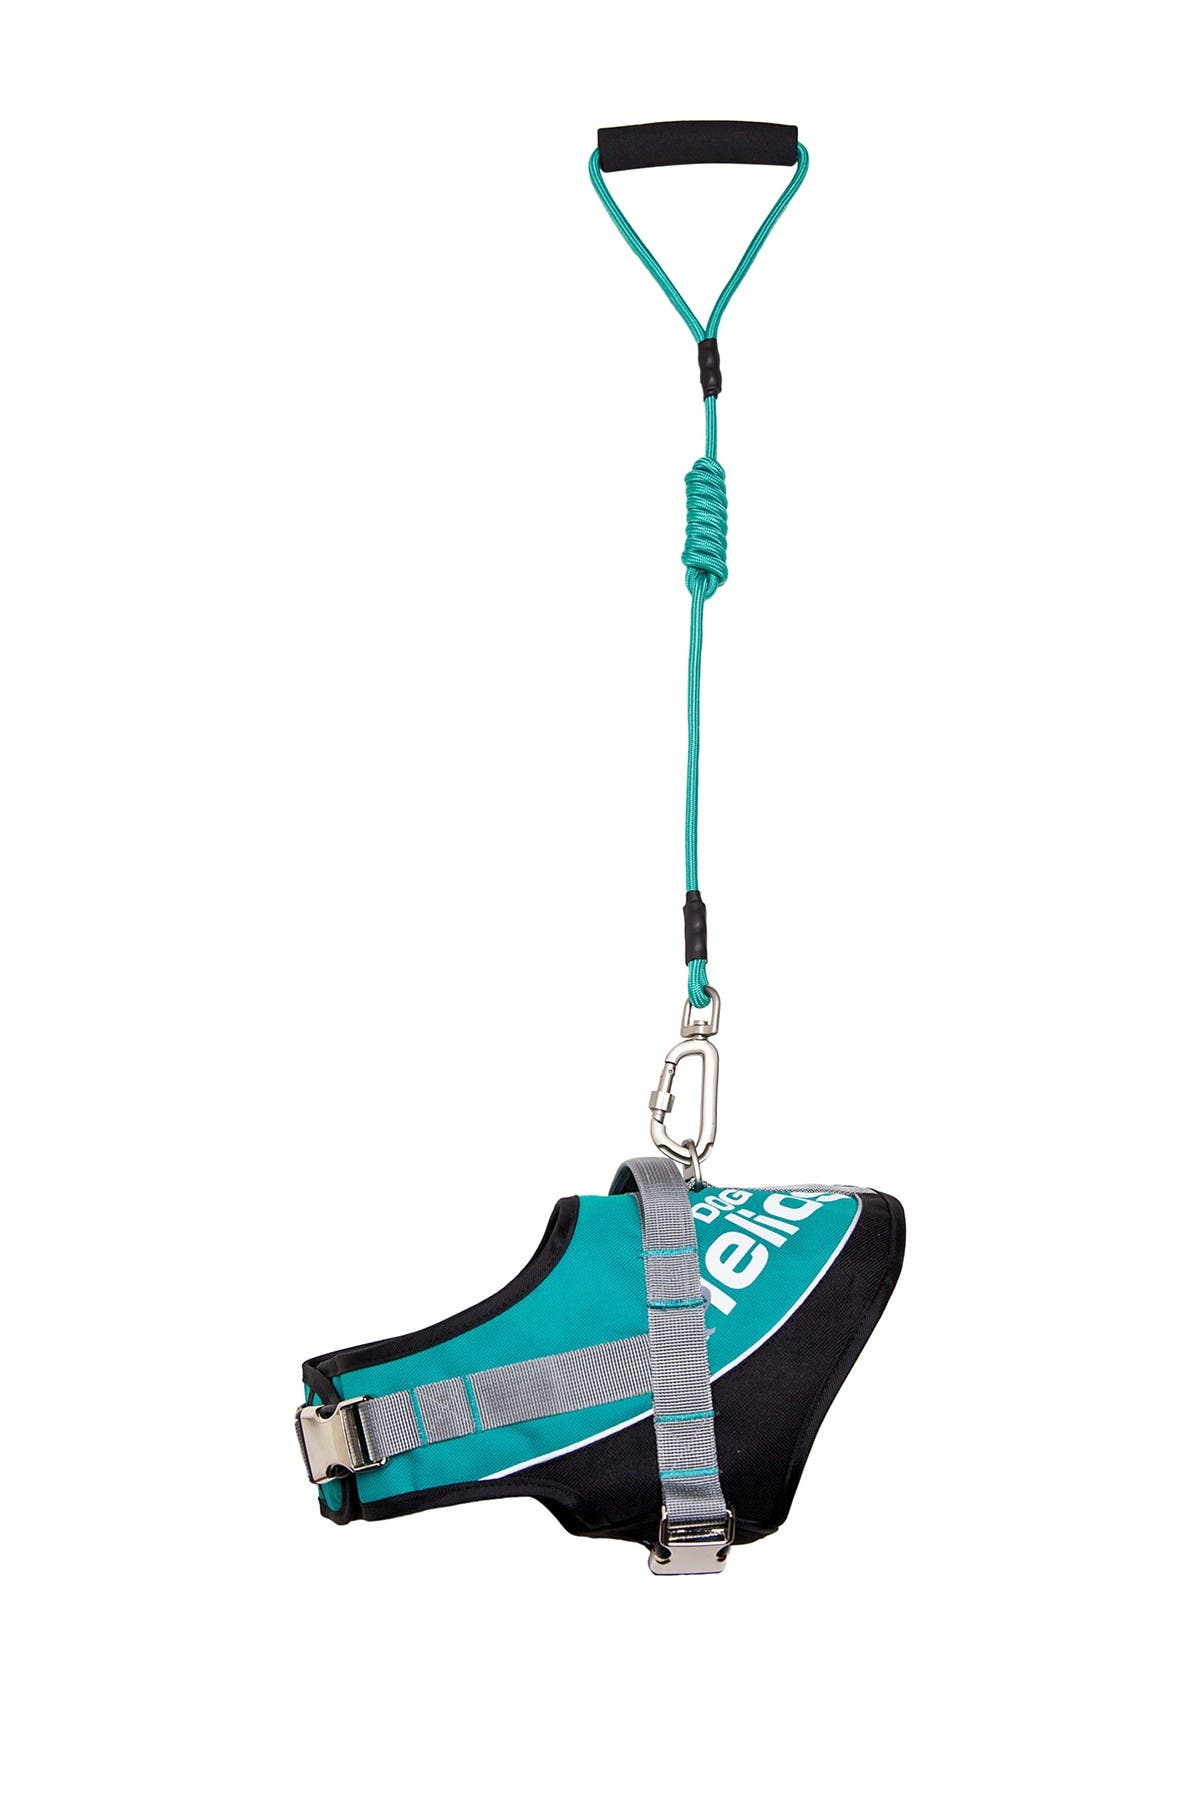 Image of PETKIT Small Teal Helios Bark-Mudder Easy Tension Reflective Endurance 2-in-1 Adjustable Dog Leash & Harness